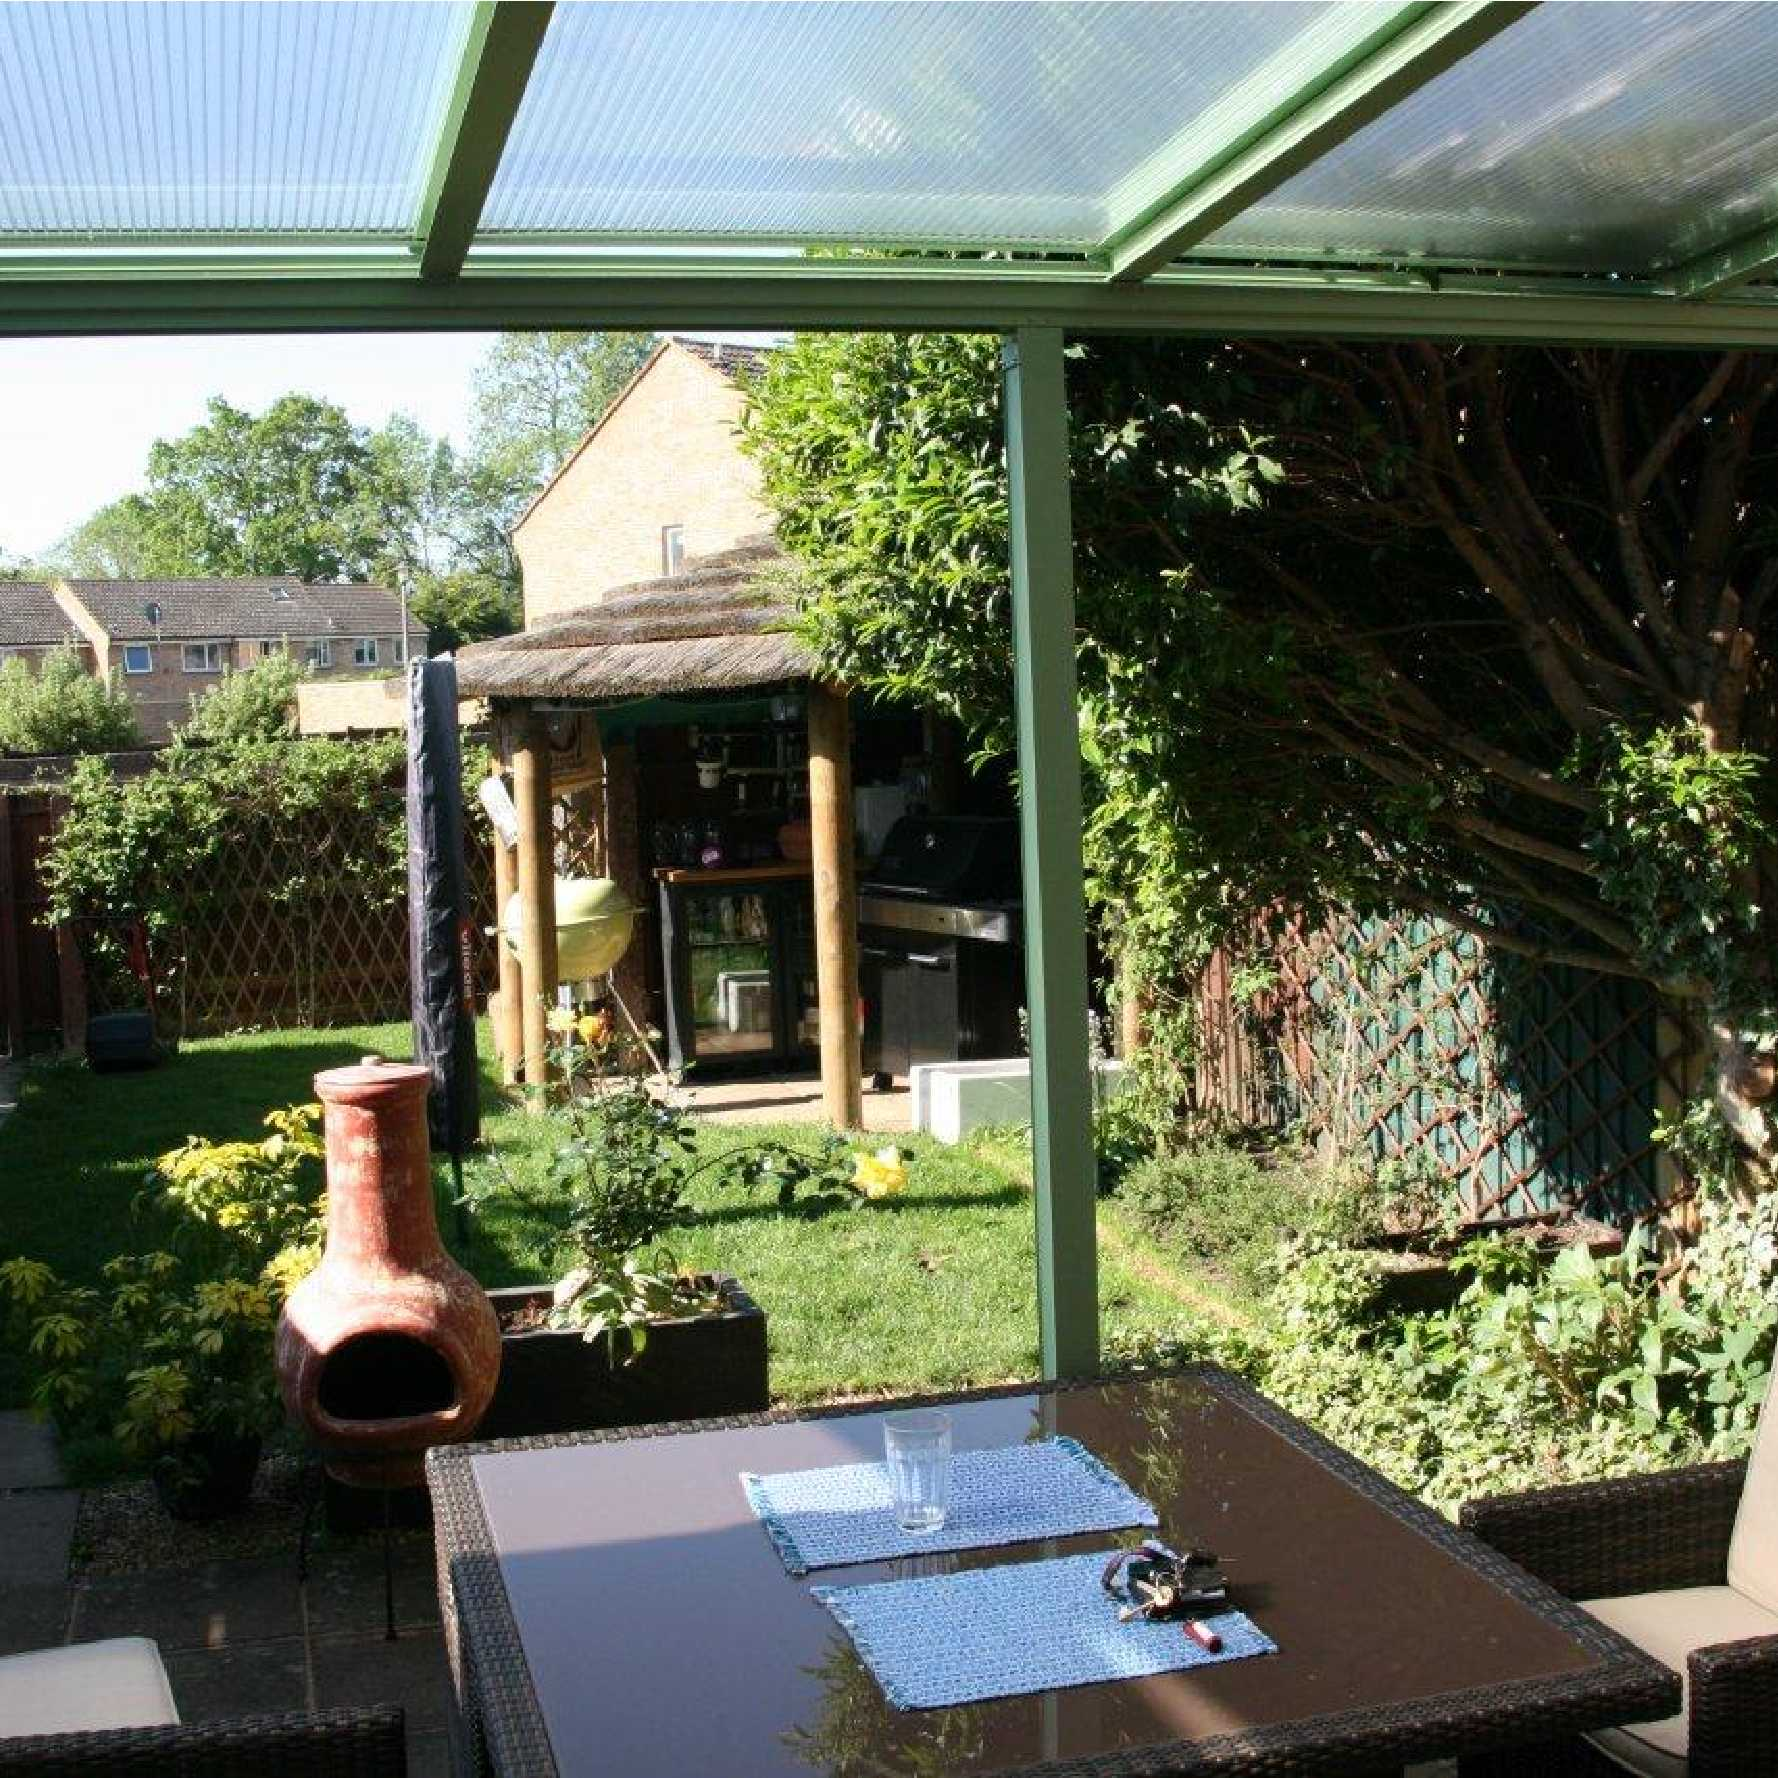 Affordable Omega Smart Lean-To Canopy with 16mm Polycarbonate Glazing - 10.6m (W) x 3.5m (P), (5) Supporting Posts